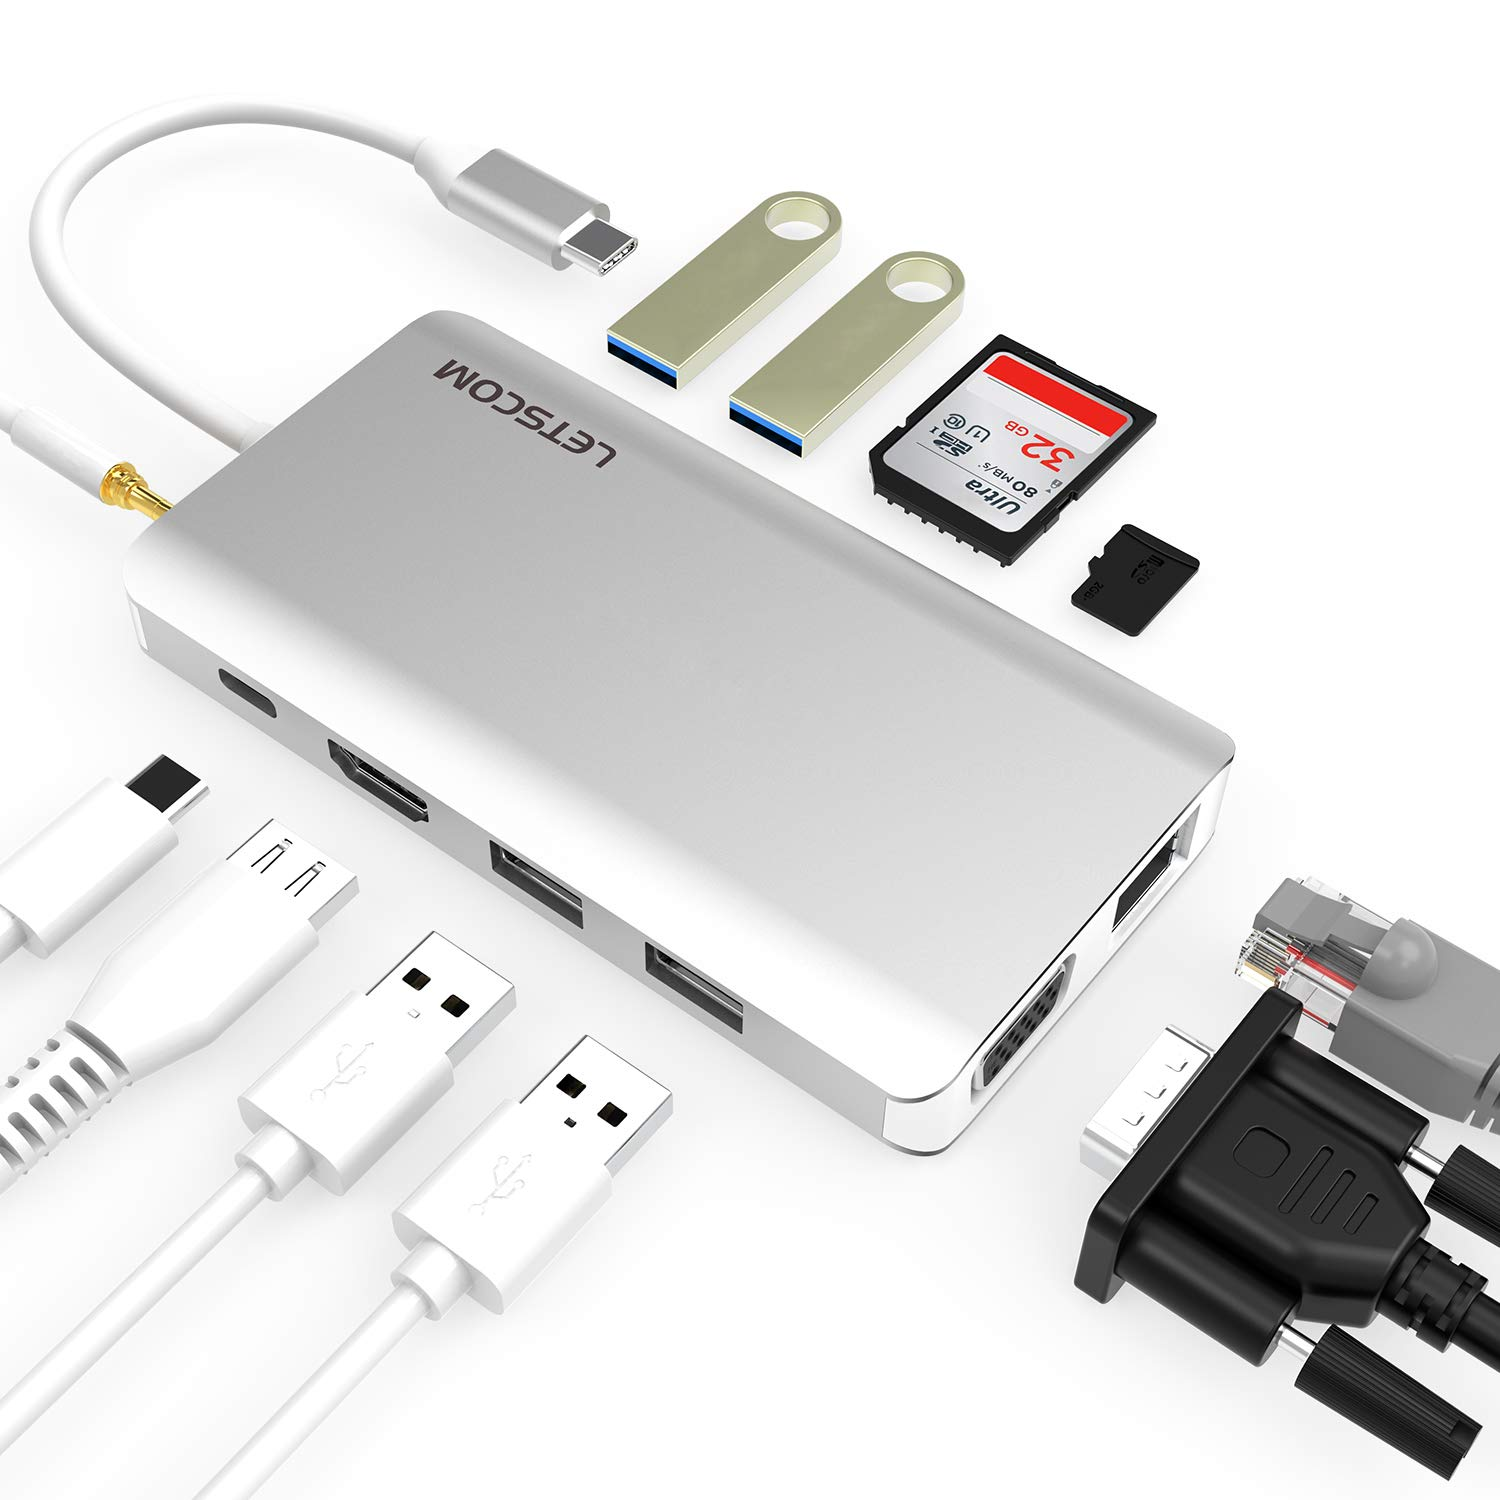 LETSCOM USB C Hub, 11 in 1 USB C Adapter with Ethernet, 4K HDMI, VGA, Power Delivery, 2 USB3.0 &USB2.0, Micro SD/TF Card Reader, Mic/Audio, Portable for The Mac Pro and Other Type C Laptops